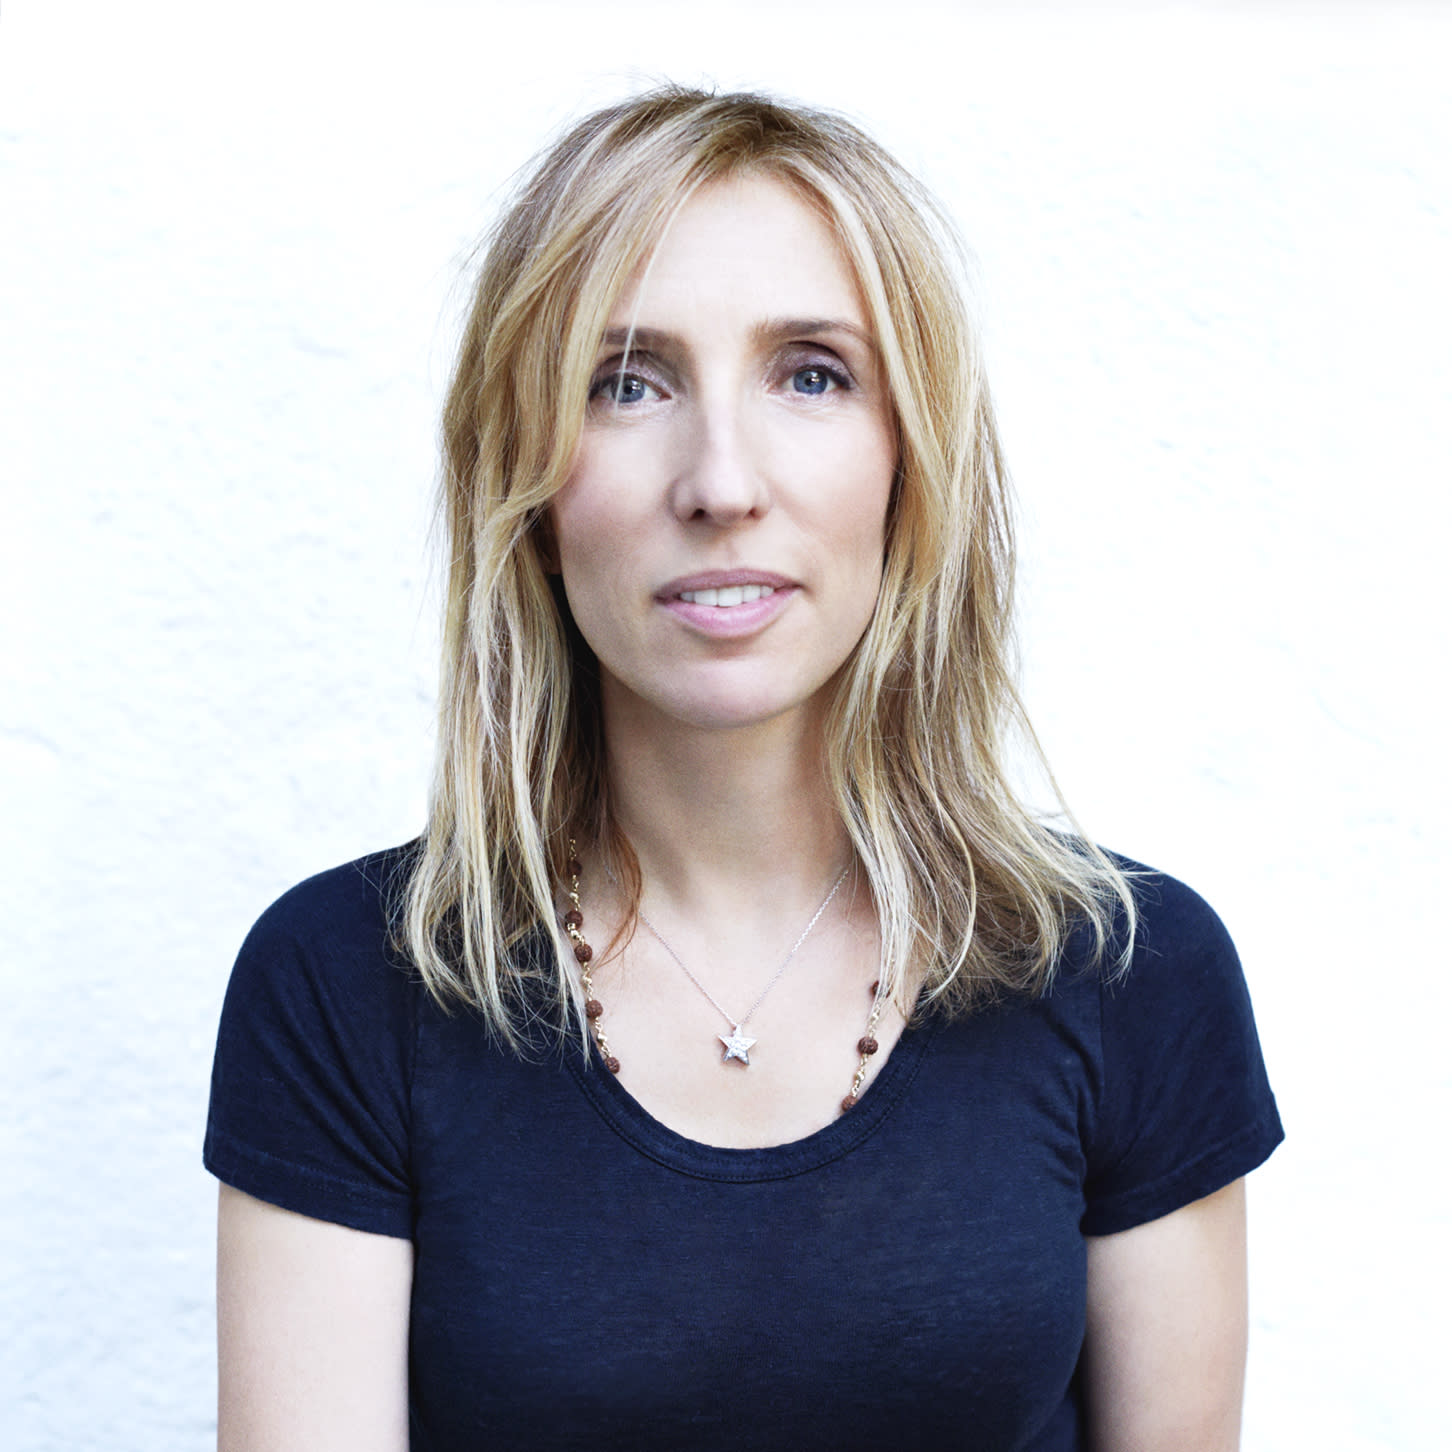 'Fifty Shades Of Grey' Director Sam Taylor-Johnson Formally Splits From Franchise